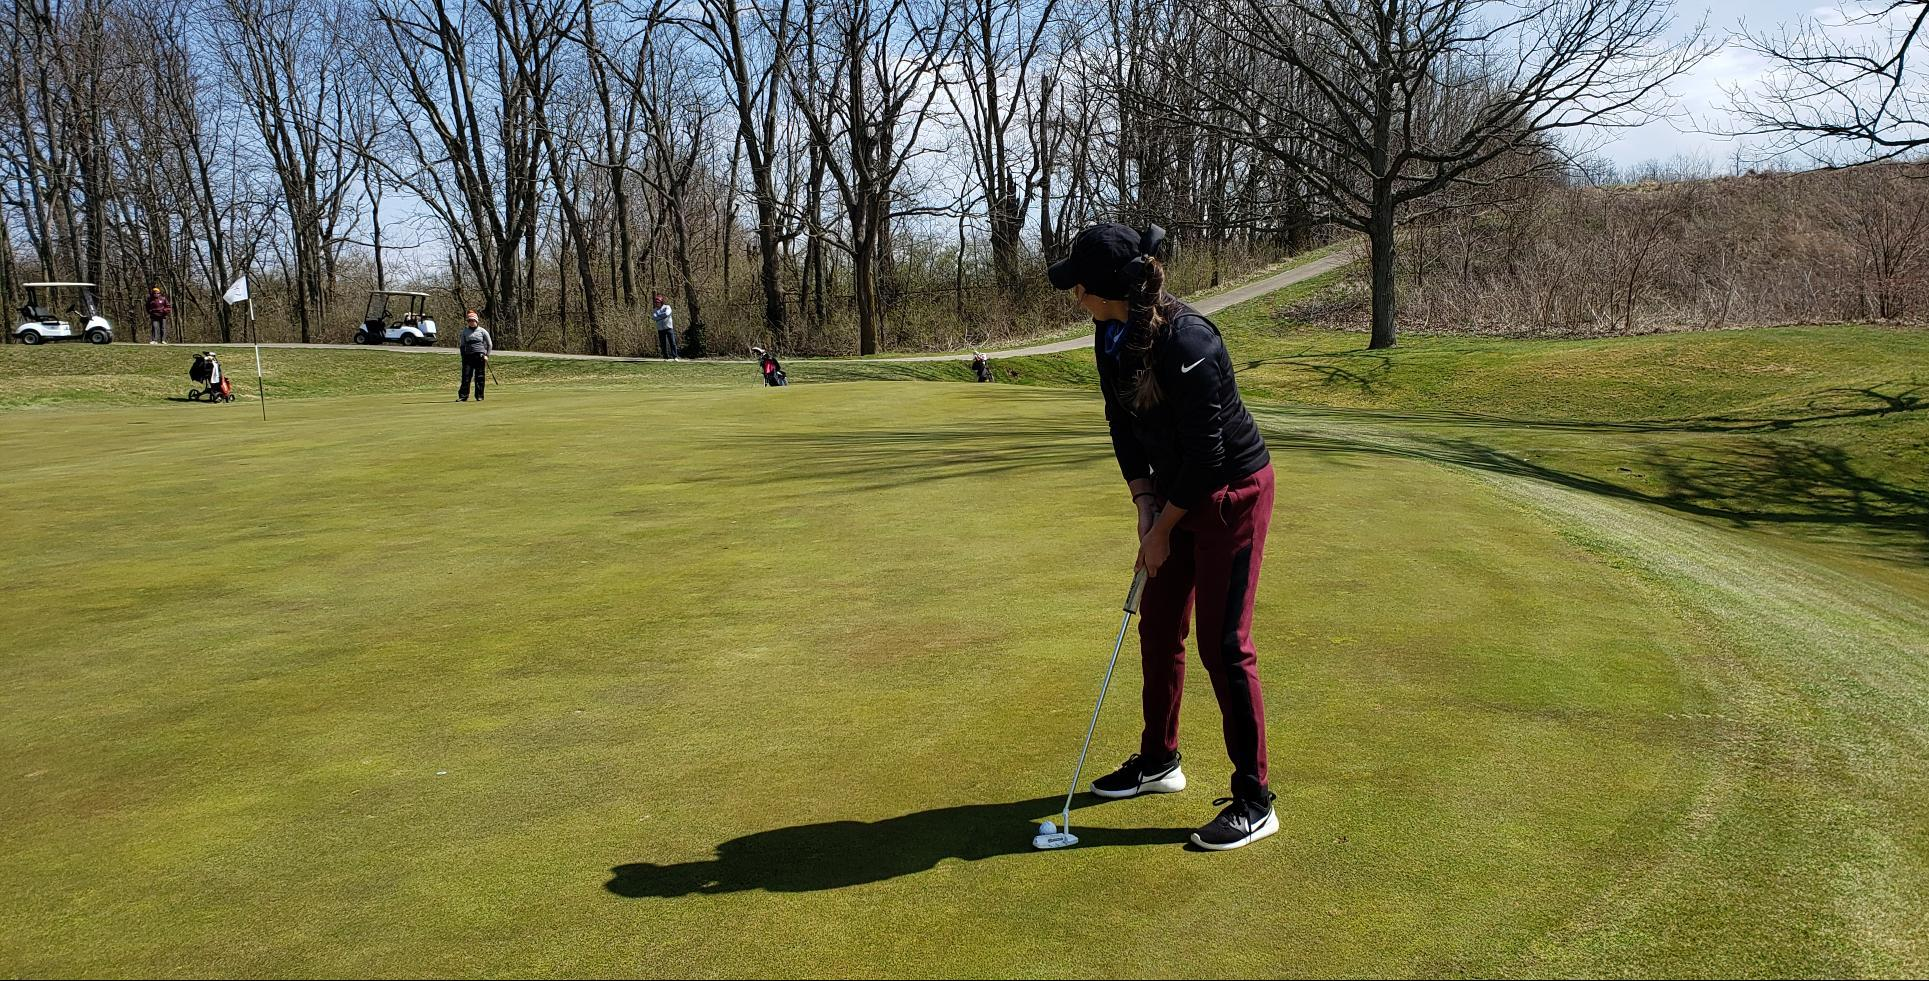 Women's Golf Improves on Day Two